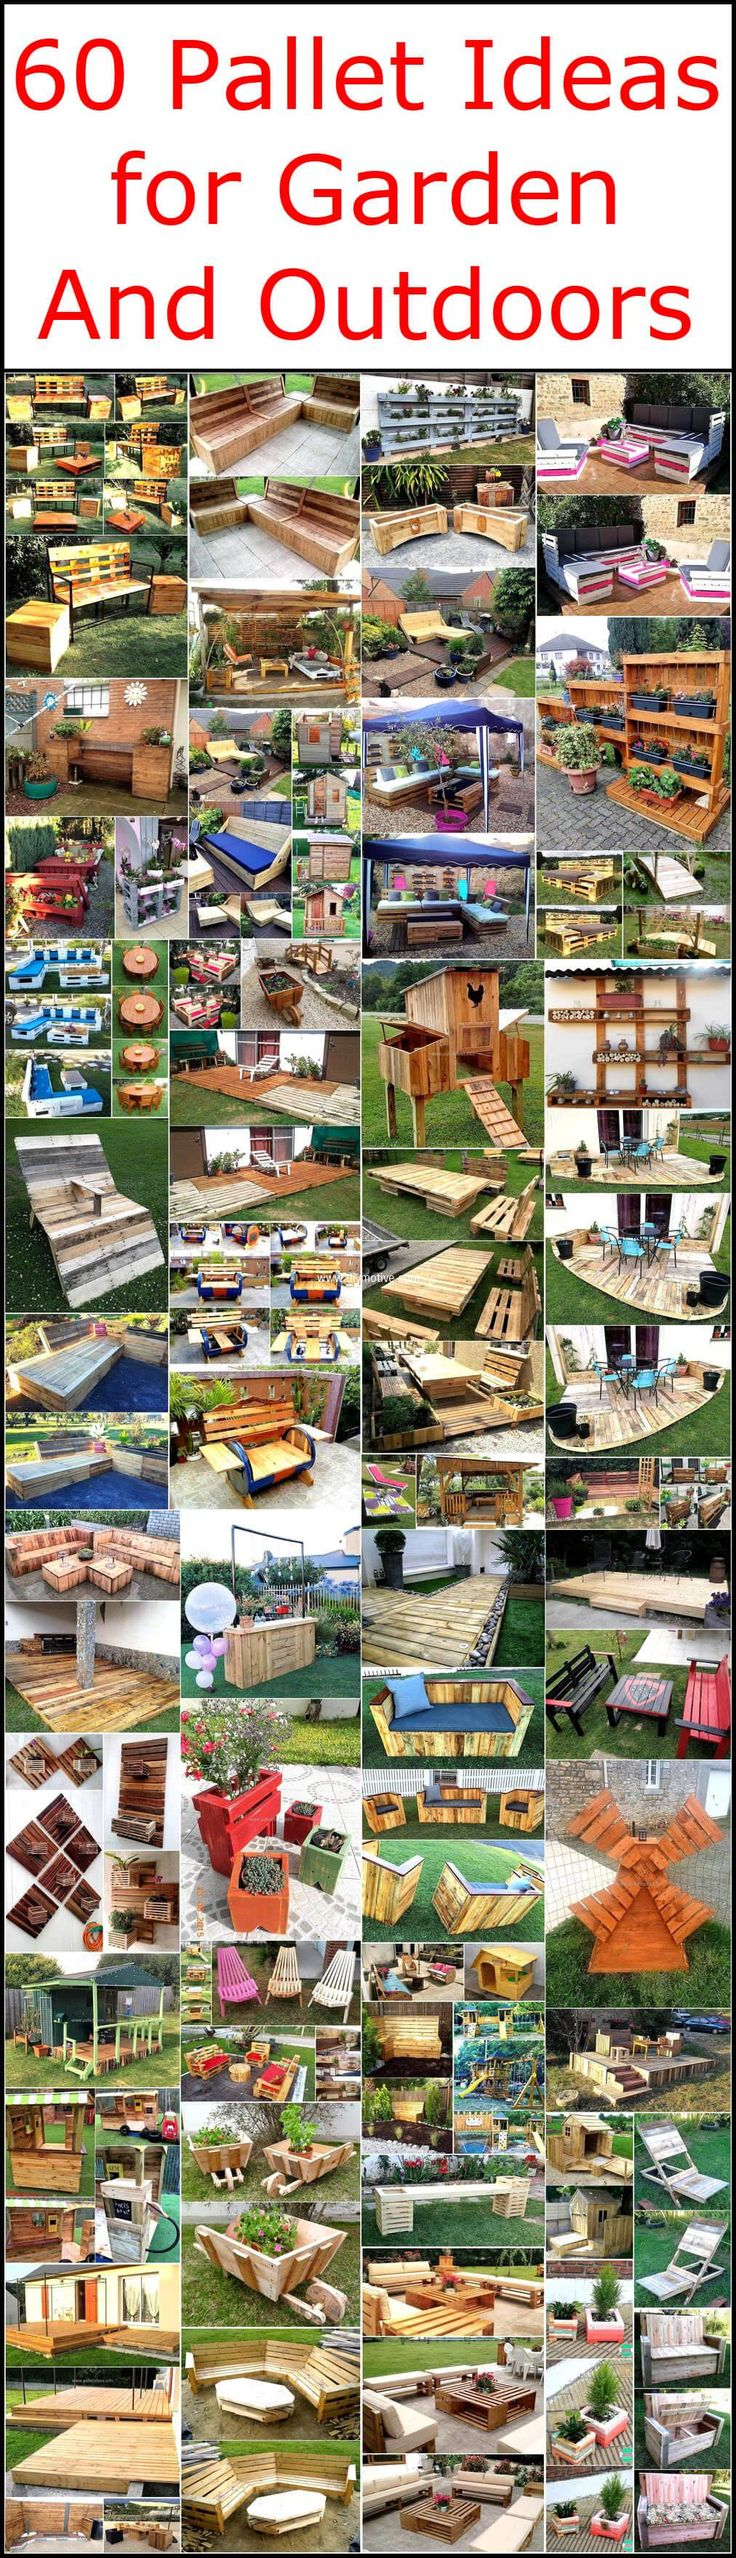 Now become a professional carpenter with these simple pallet outdoor and garden renovating ideas and change the dull appearance of your place into a royal, luxurious one. Now design your own garden planter, deck floor, benches, chairs, tables and save your money from buying expensive wooden furniture items available in furniture markets.